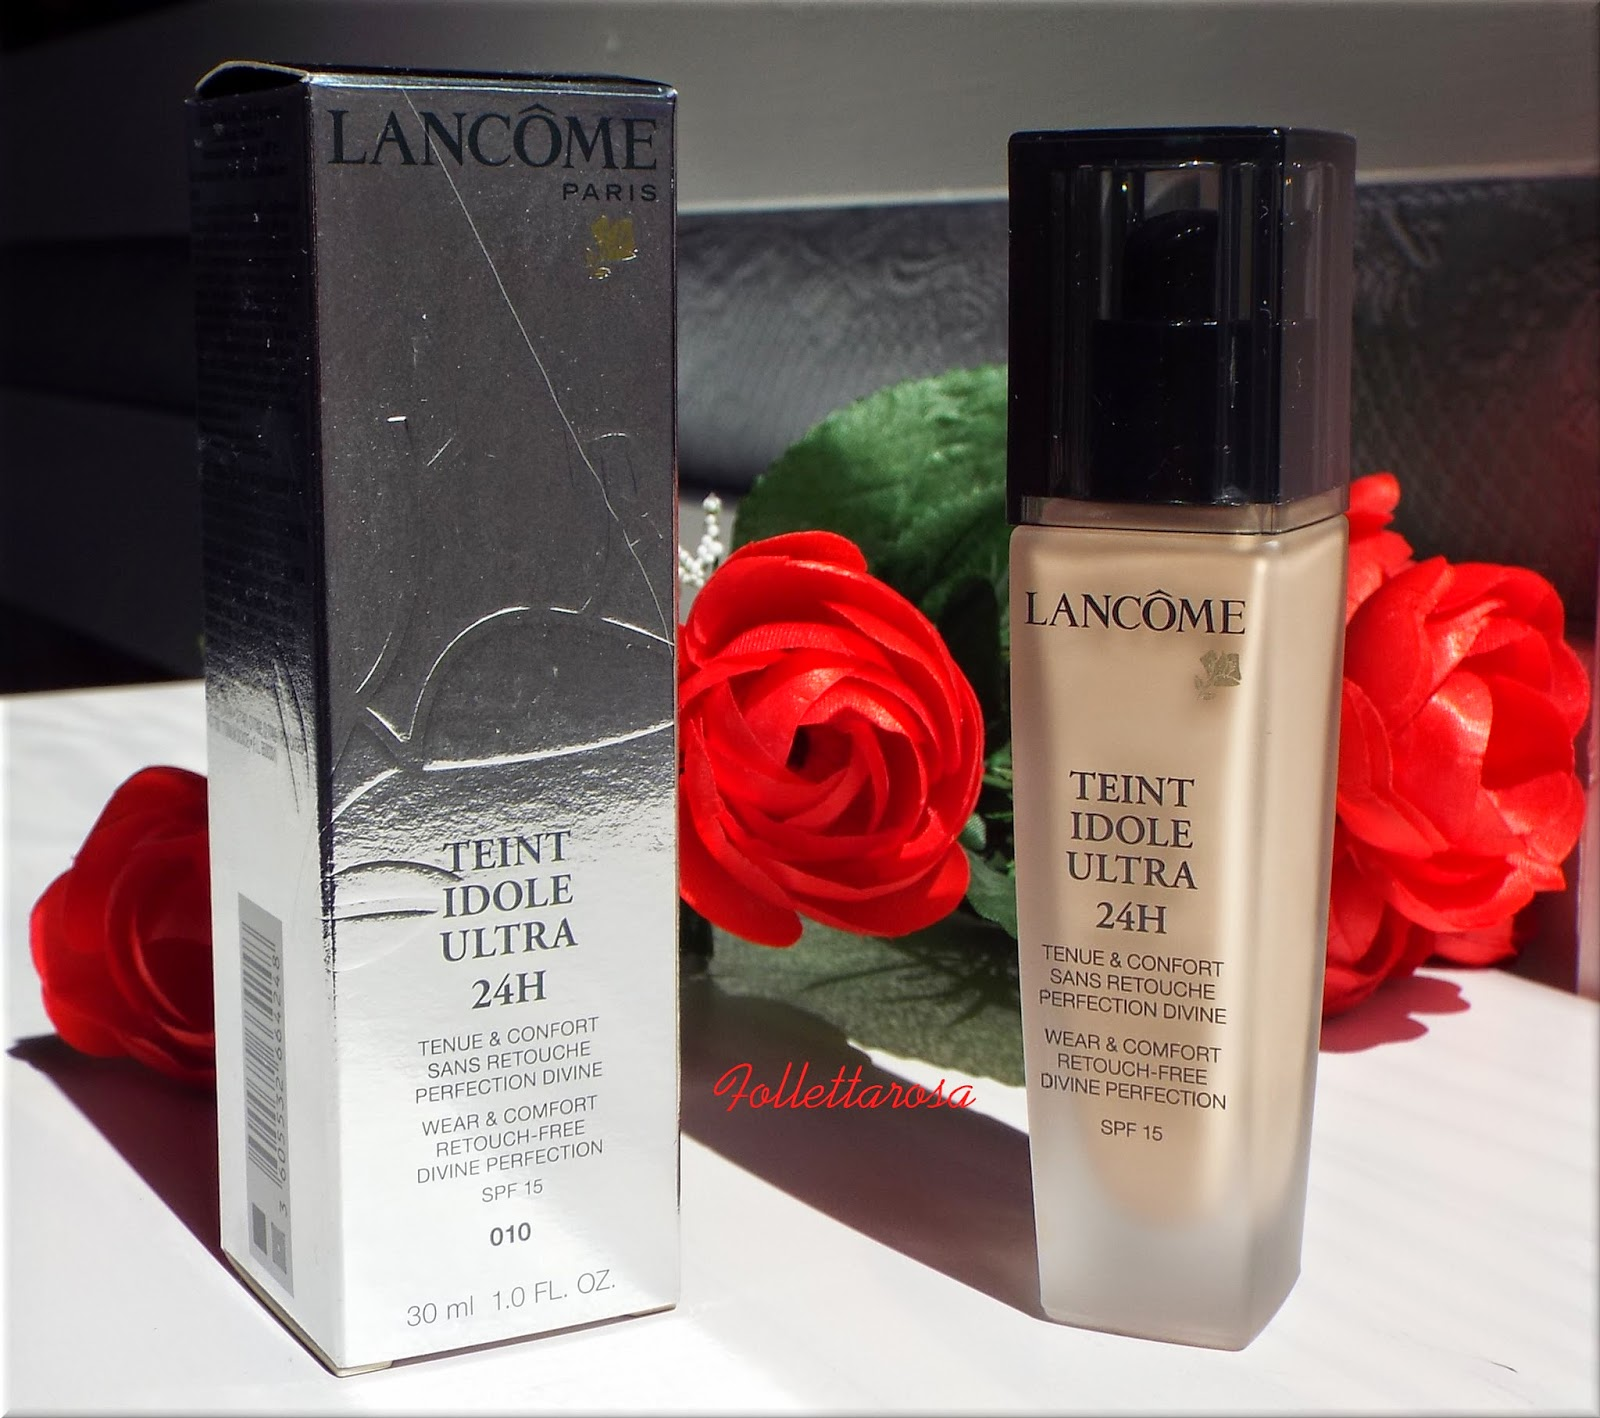 teint idole ultra lancome recensione